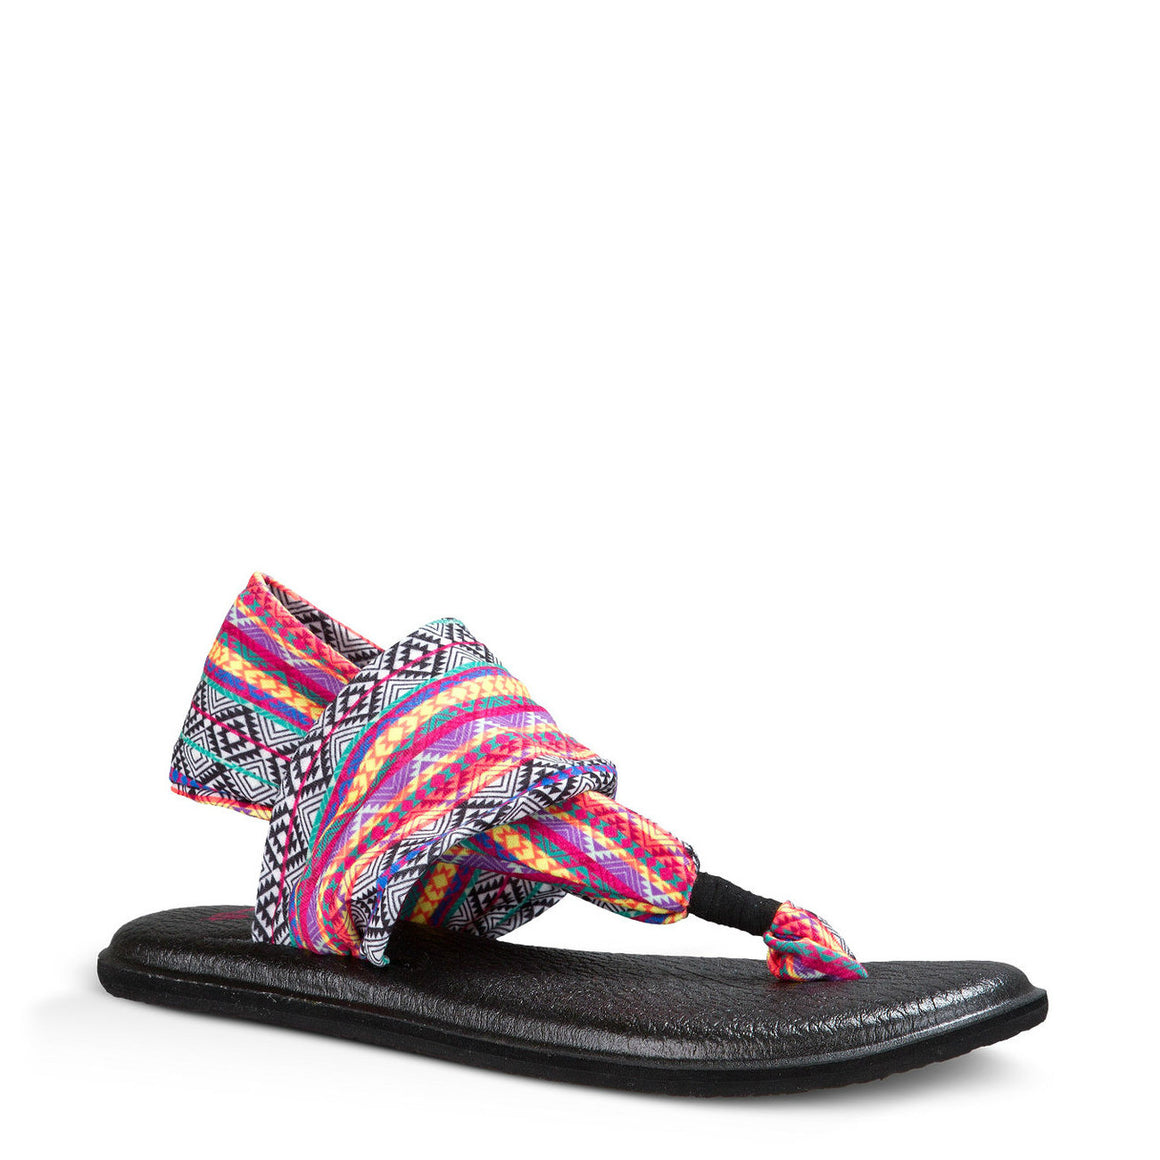 Sanuk Women's Yoga Sling 2 - Magenta/Multi Tribal Stripe SWS10535